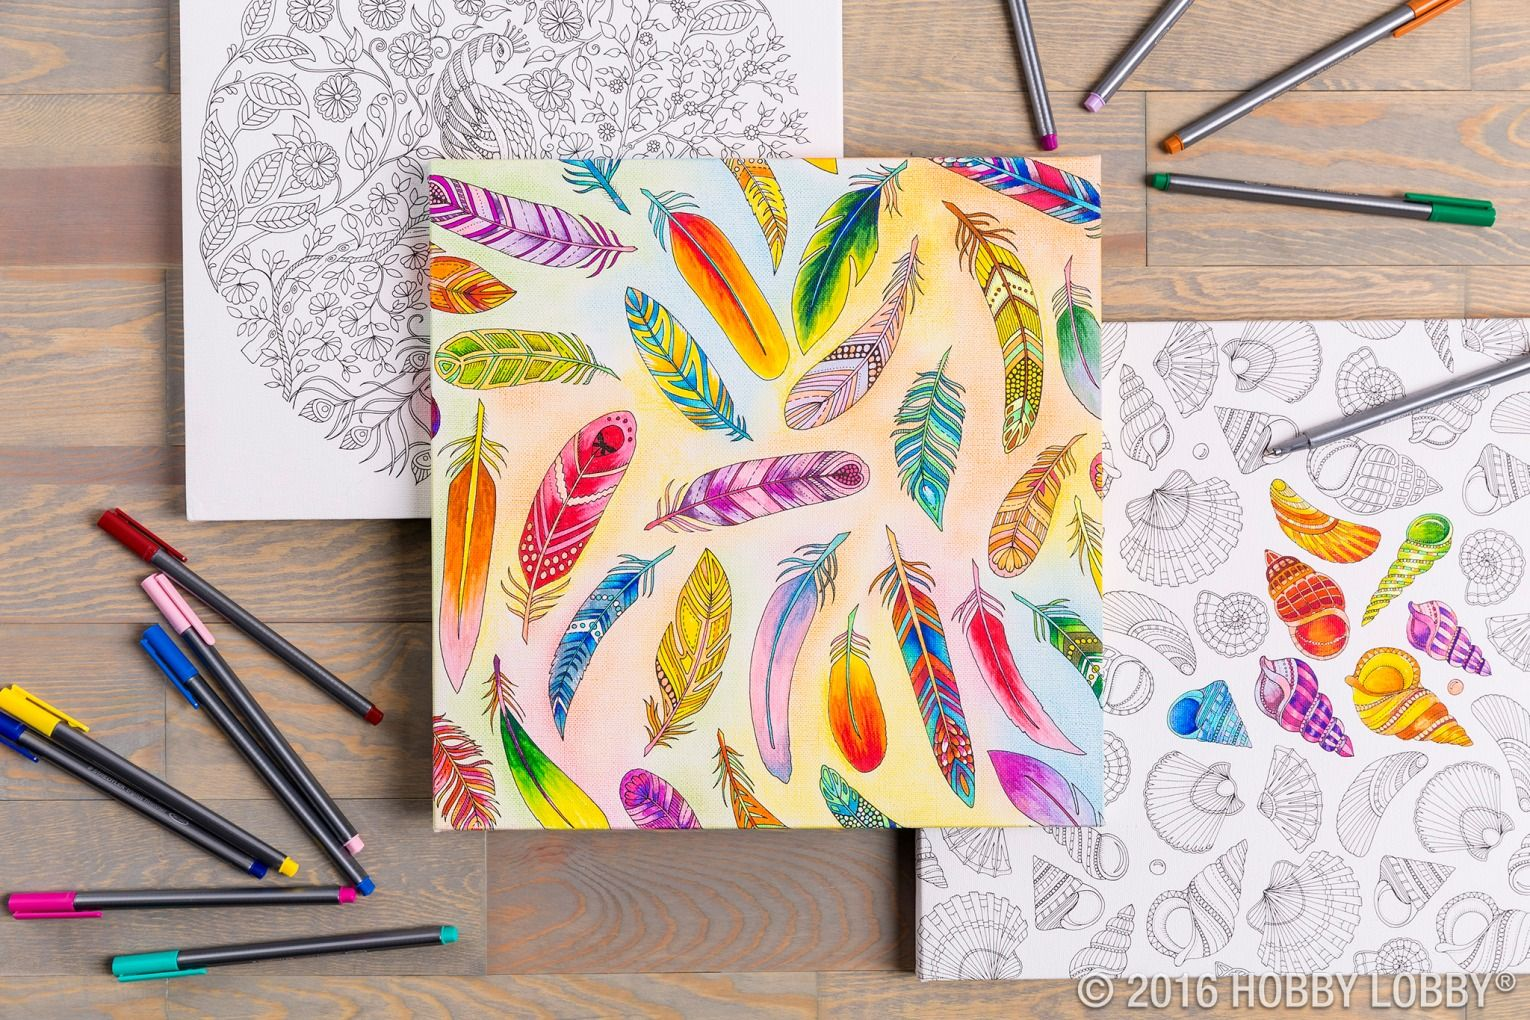 Let your creativity flow on a beautifully detailed coloring